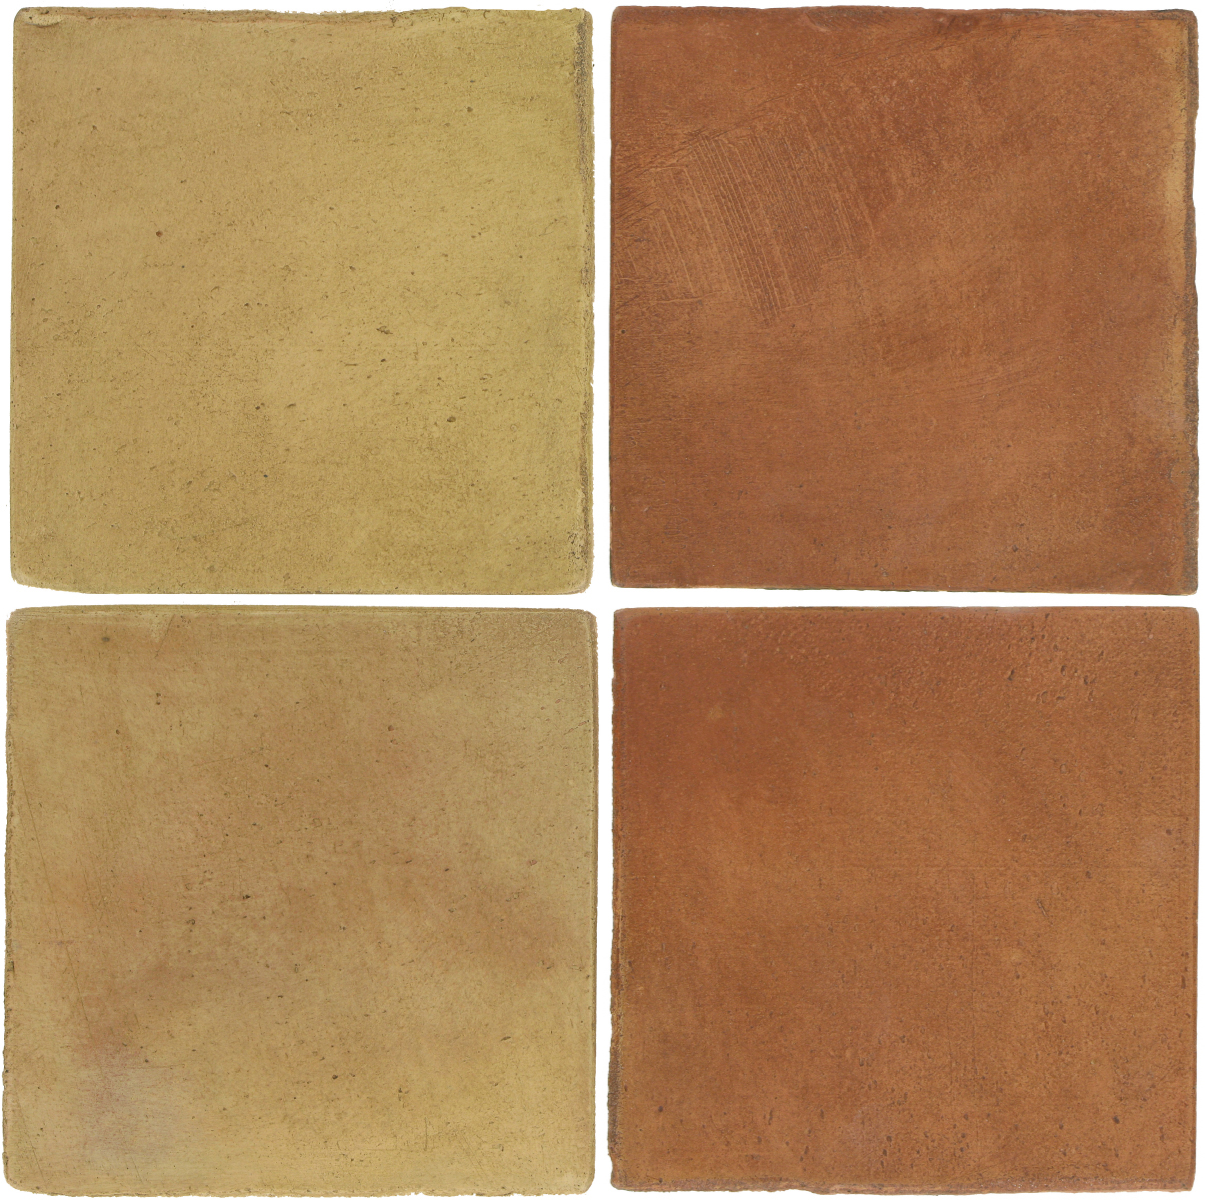 Pedralbes Antique Terracotta  2 Color Combinations  OHS-PSPS Provence Straw + OHS-PSTR Traditional